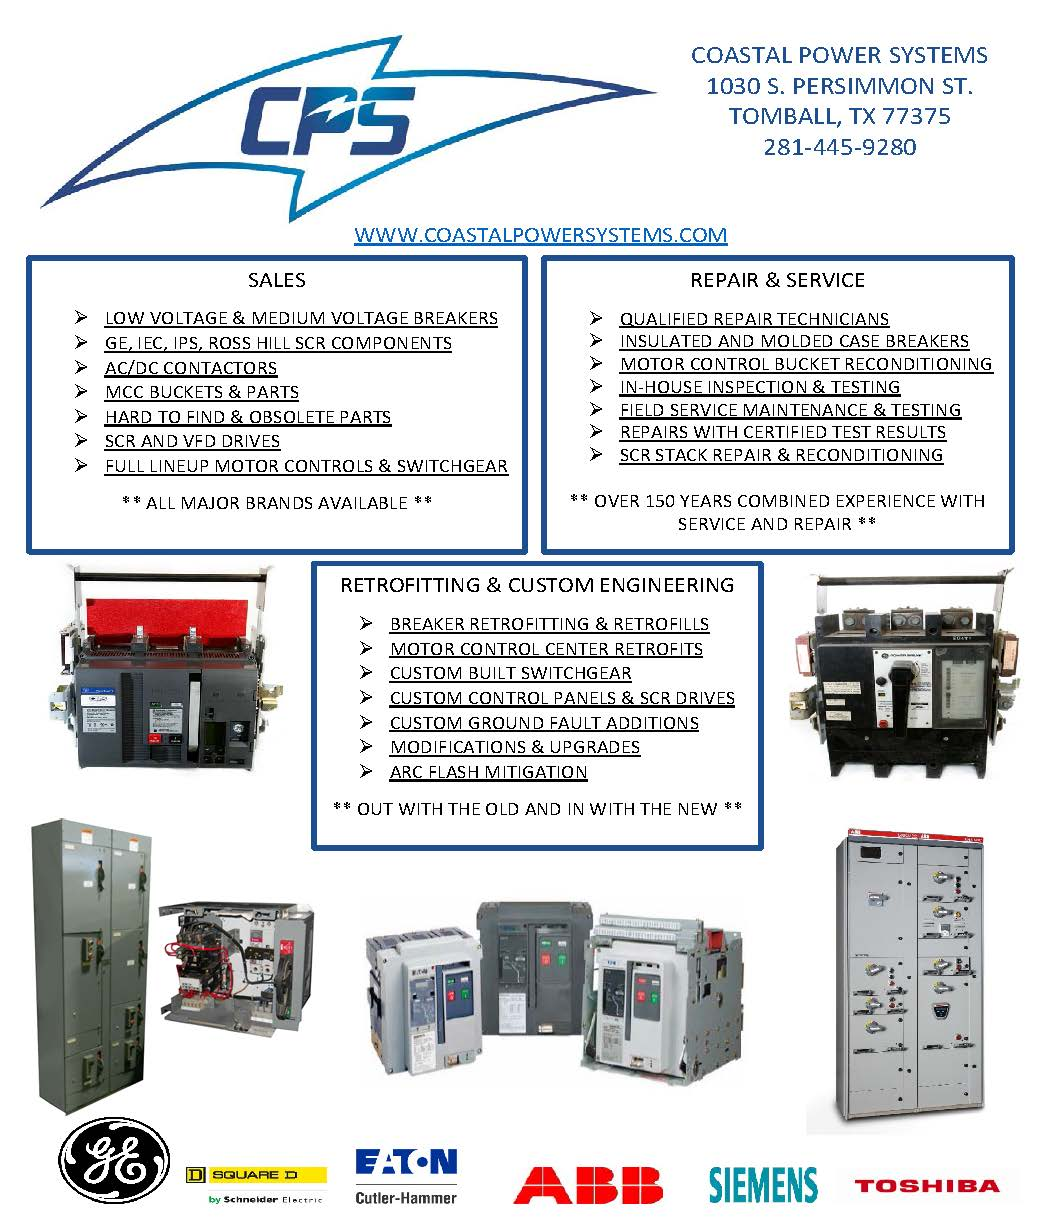 Coastal Power Systems - Electrical Contractors Tomball Texas